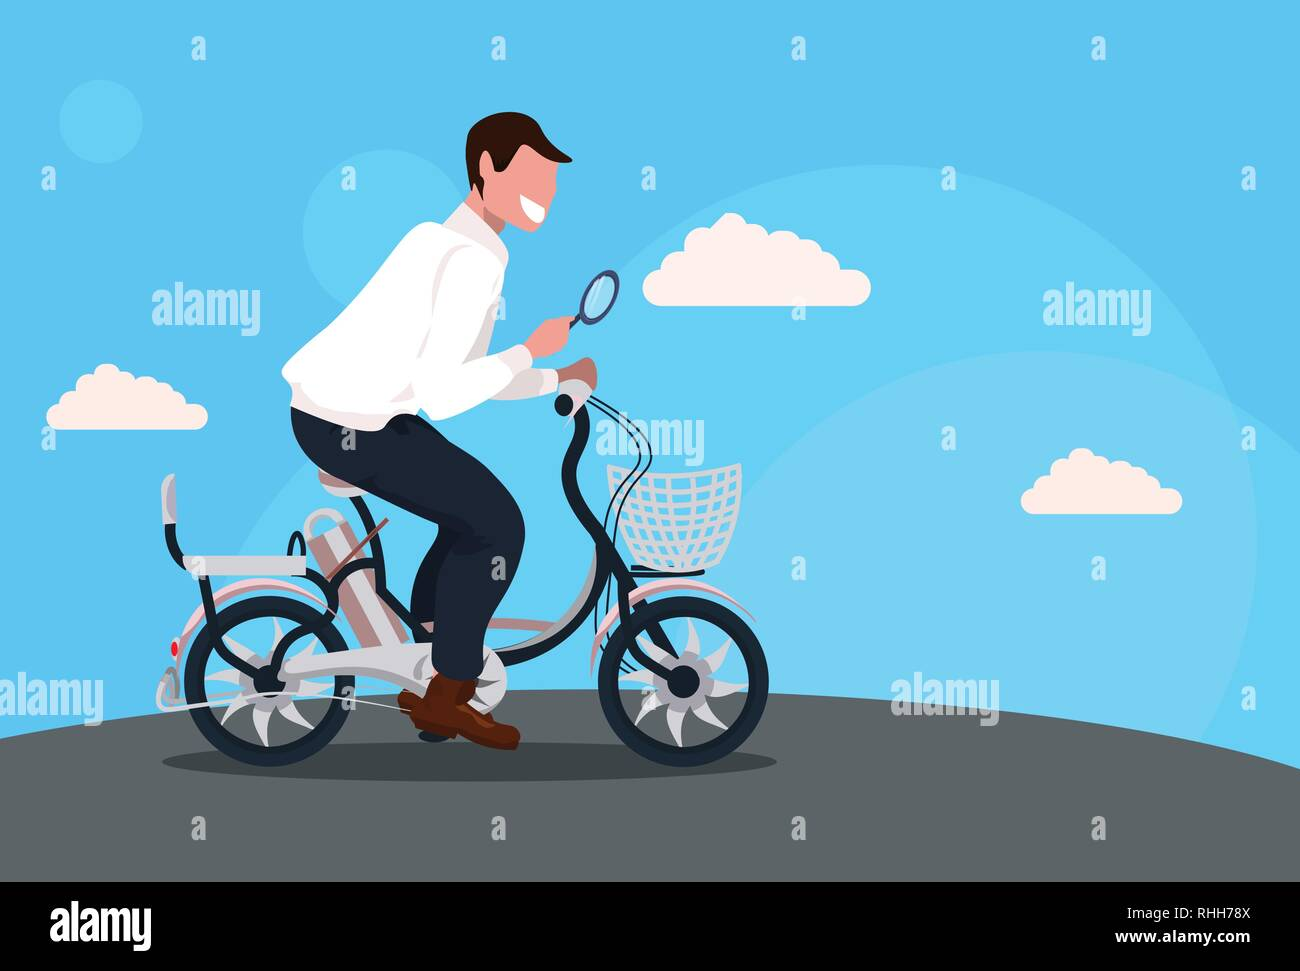 man cycling bicycle holding magnifying glass searching detecting and analyzing concept guy riding bike male cartoon character full length horizontal - Stock Vector